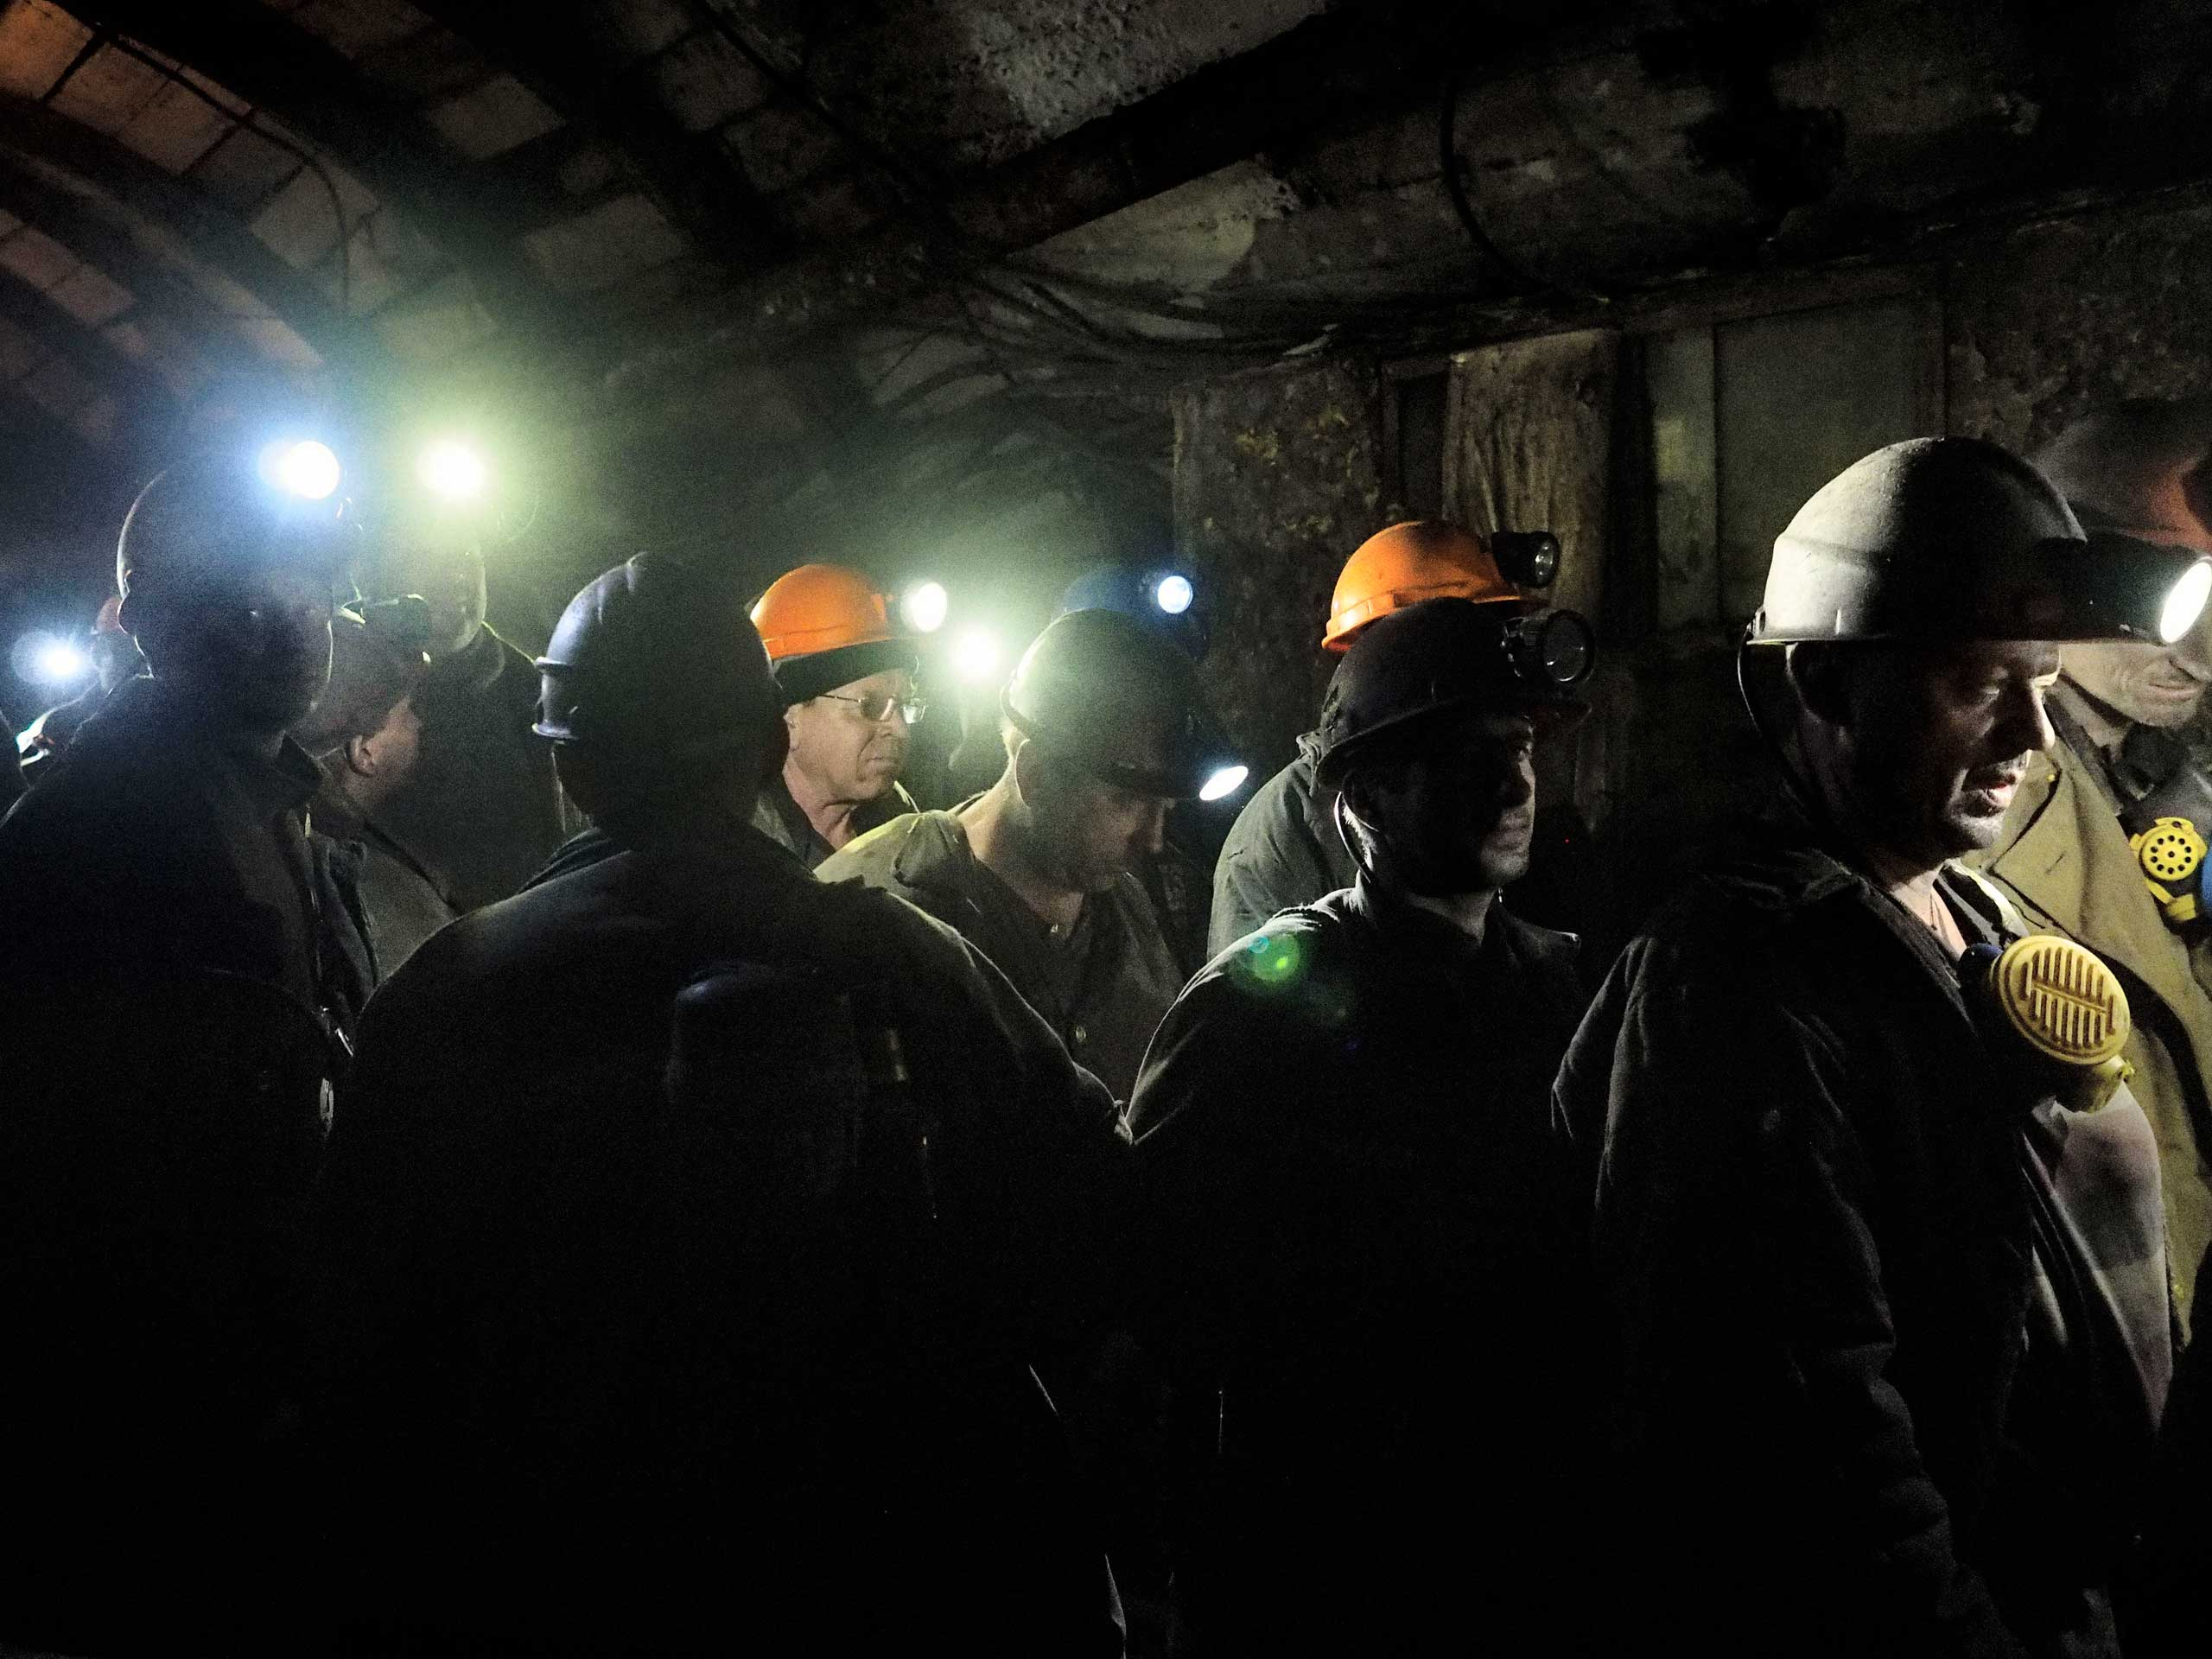 A group of miners on the way to the cable car during the evacuation. Petrovskyi district, Donetsk, Ukraine. Nov. 22, 2014.